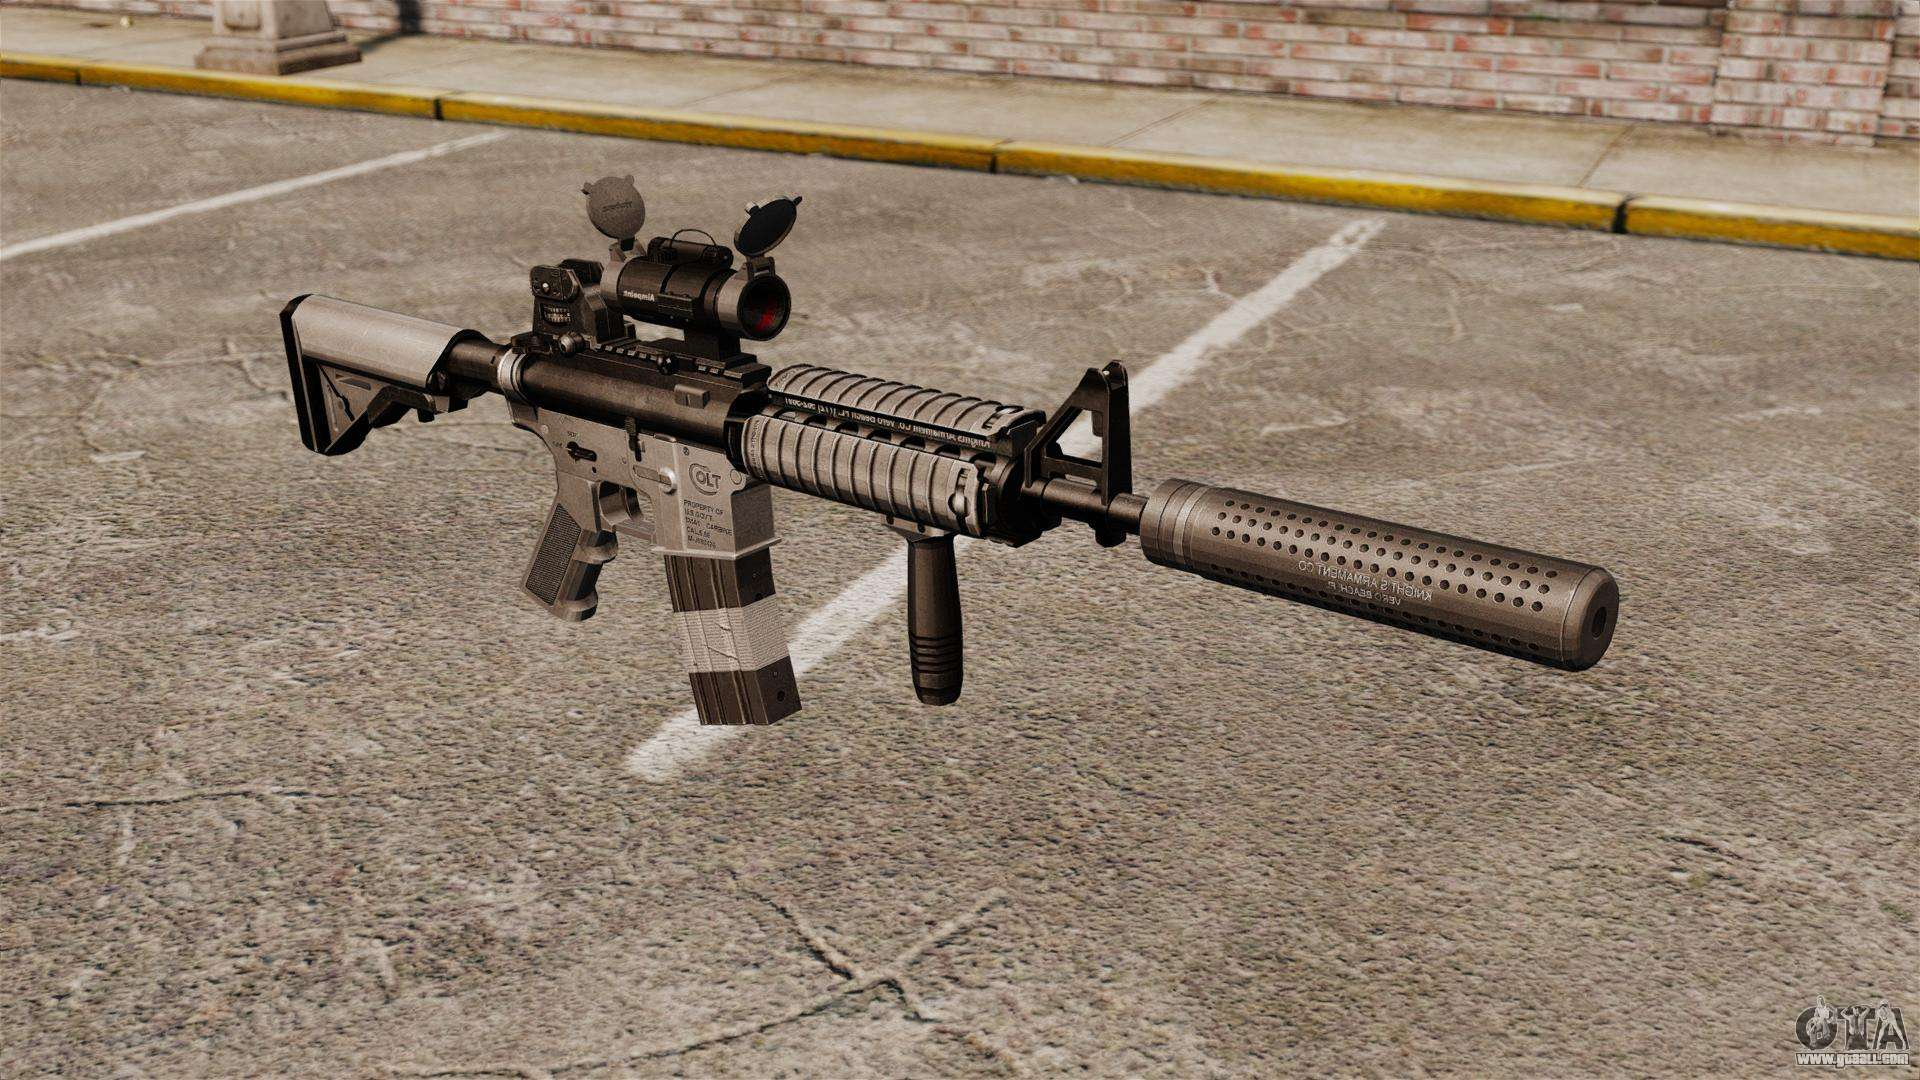 arma 3 sniper screenshots with 33031 M4 Carbine With Silencer V2 on Sniper Elite 3 Review as well Arma 3 Wallpaper Hd furthermore Call Of Duty Infinite Warfare Ganha Novas Imagens 42615 furthermore Dayz Standalone Wallpapers besides 43704 Fn P90 Mkii.